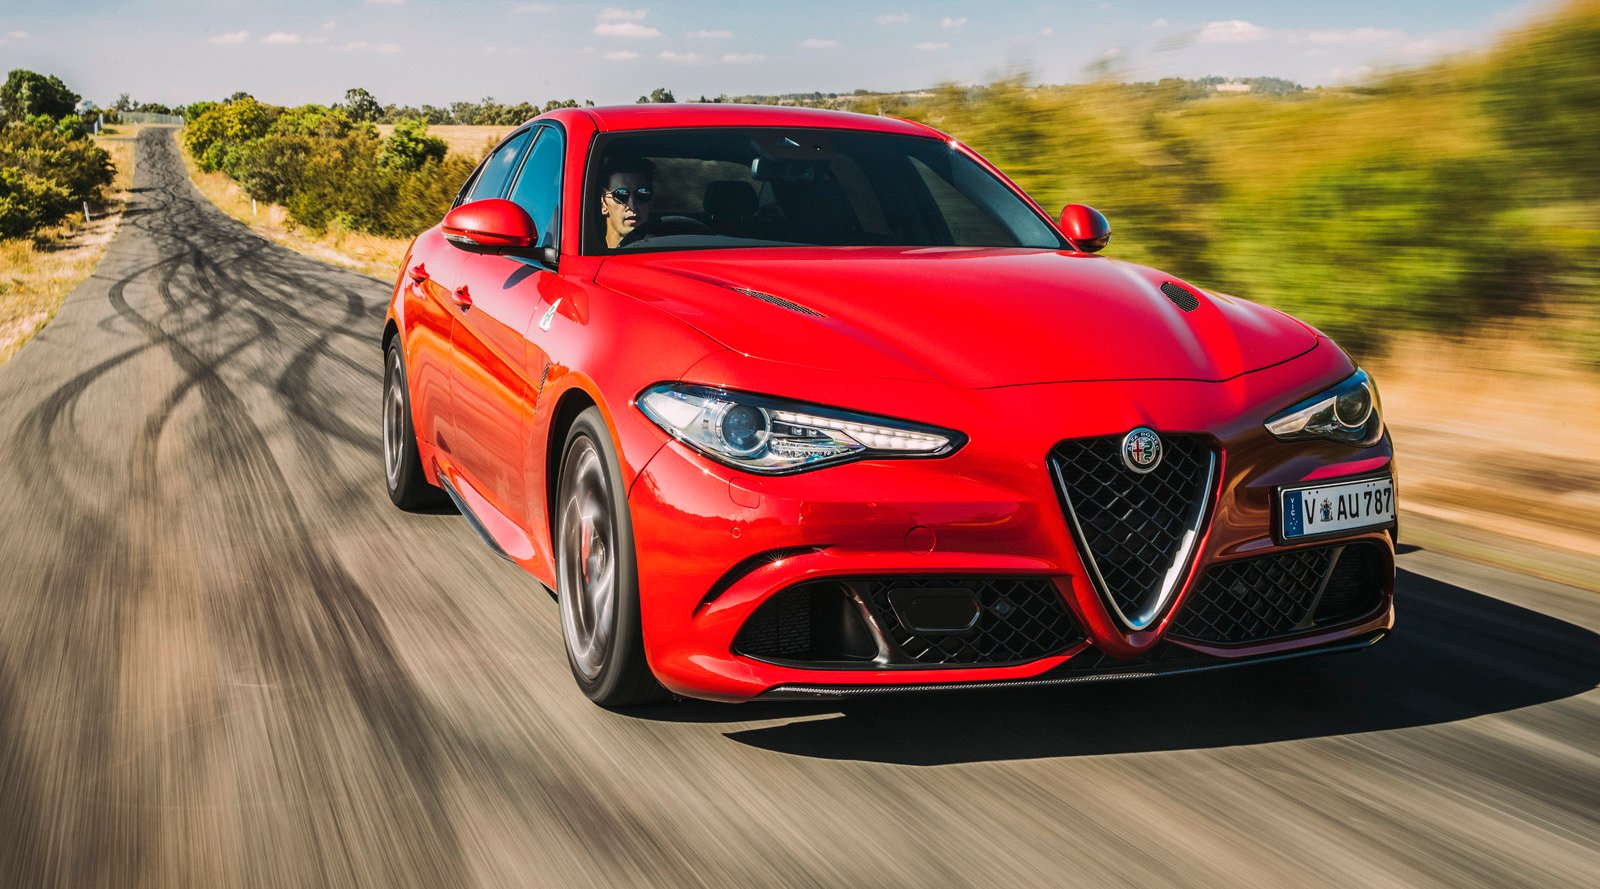 2017 Alfa Romeo Giulia pricing and specs - photos | CarAdvice